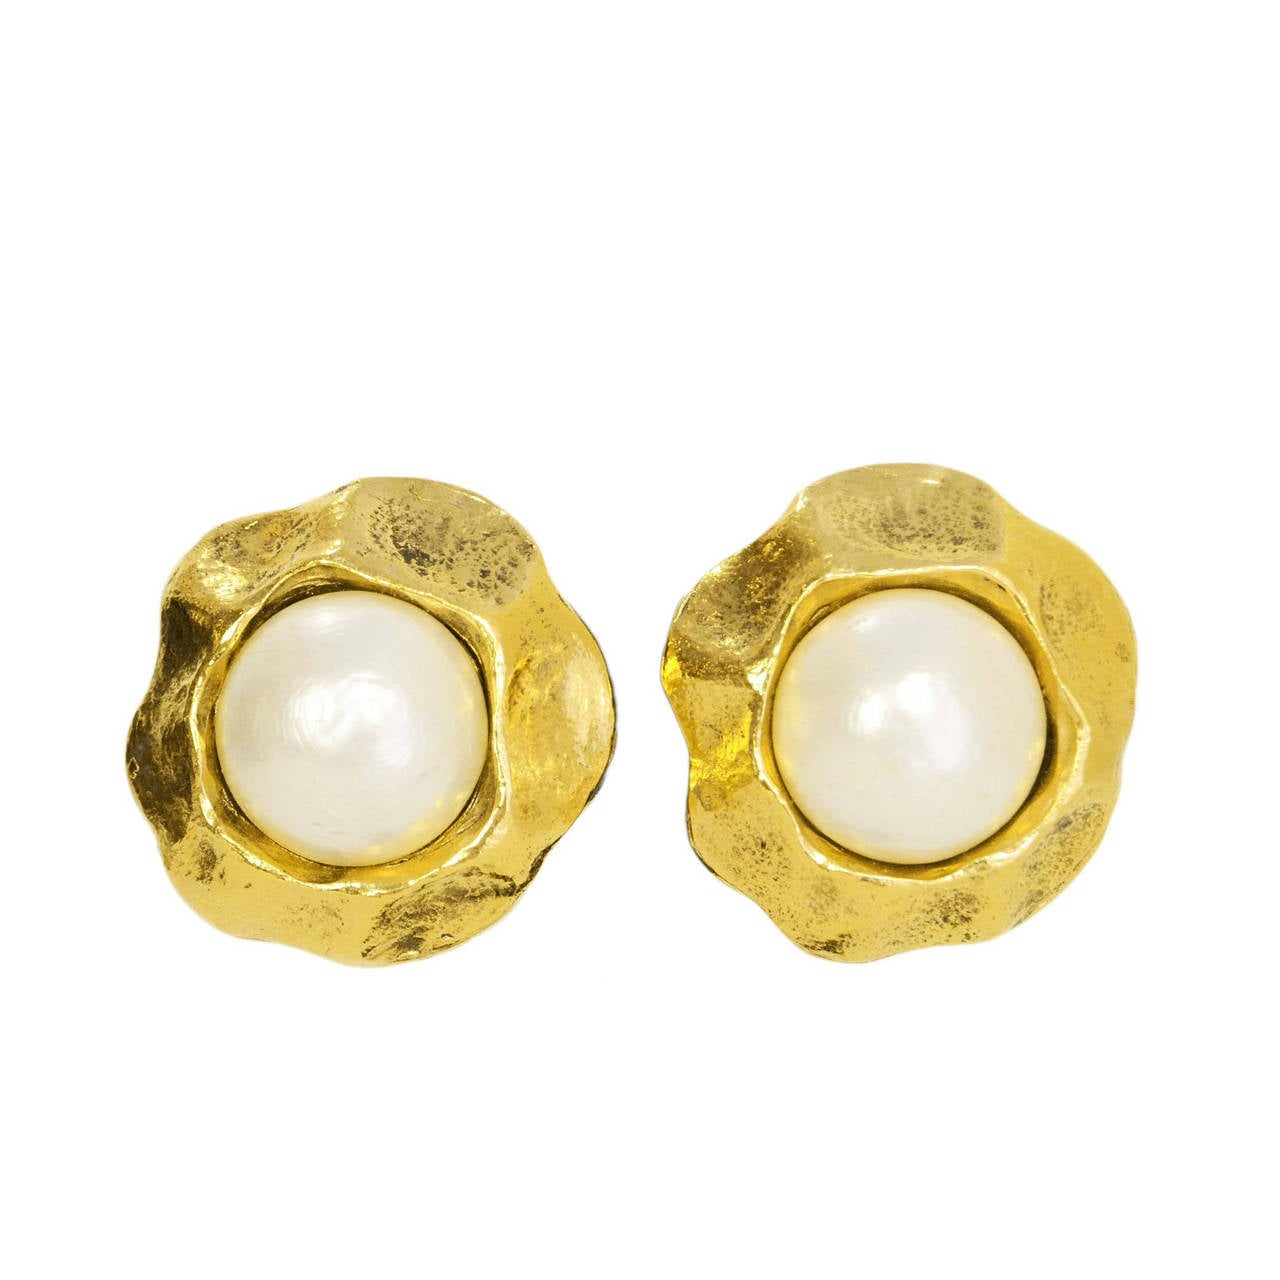 CHANEL Vintage '50s-'60s Hammered Gold & Pearl Clip On Earrings For Sale